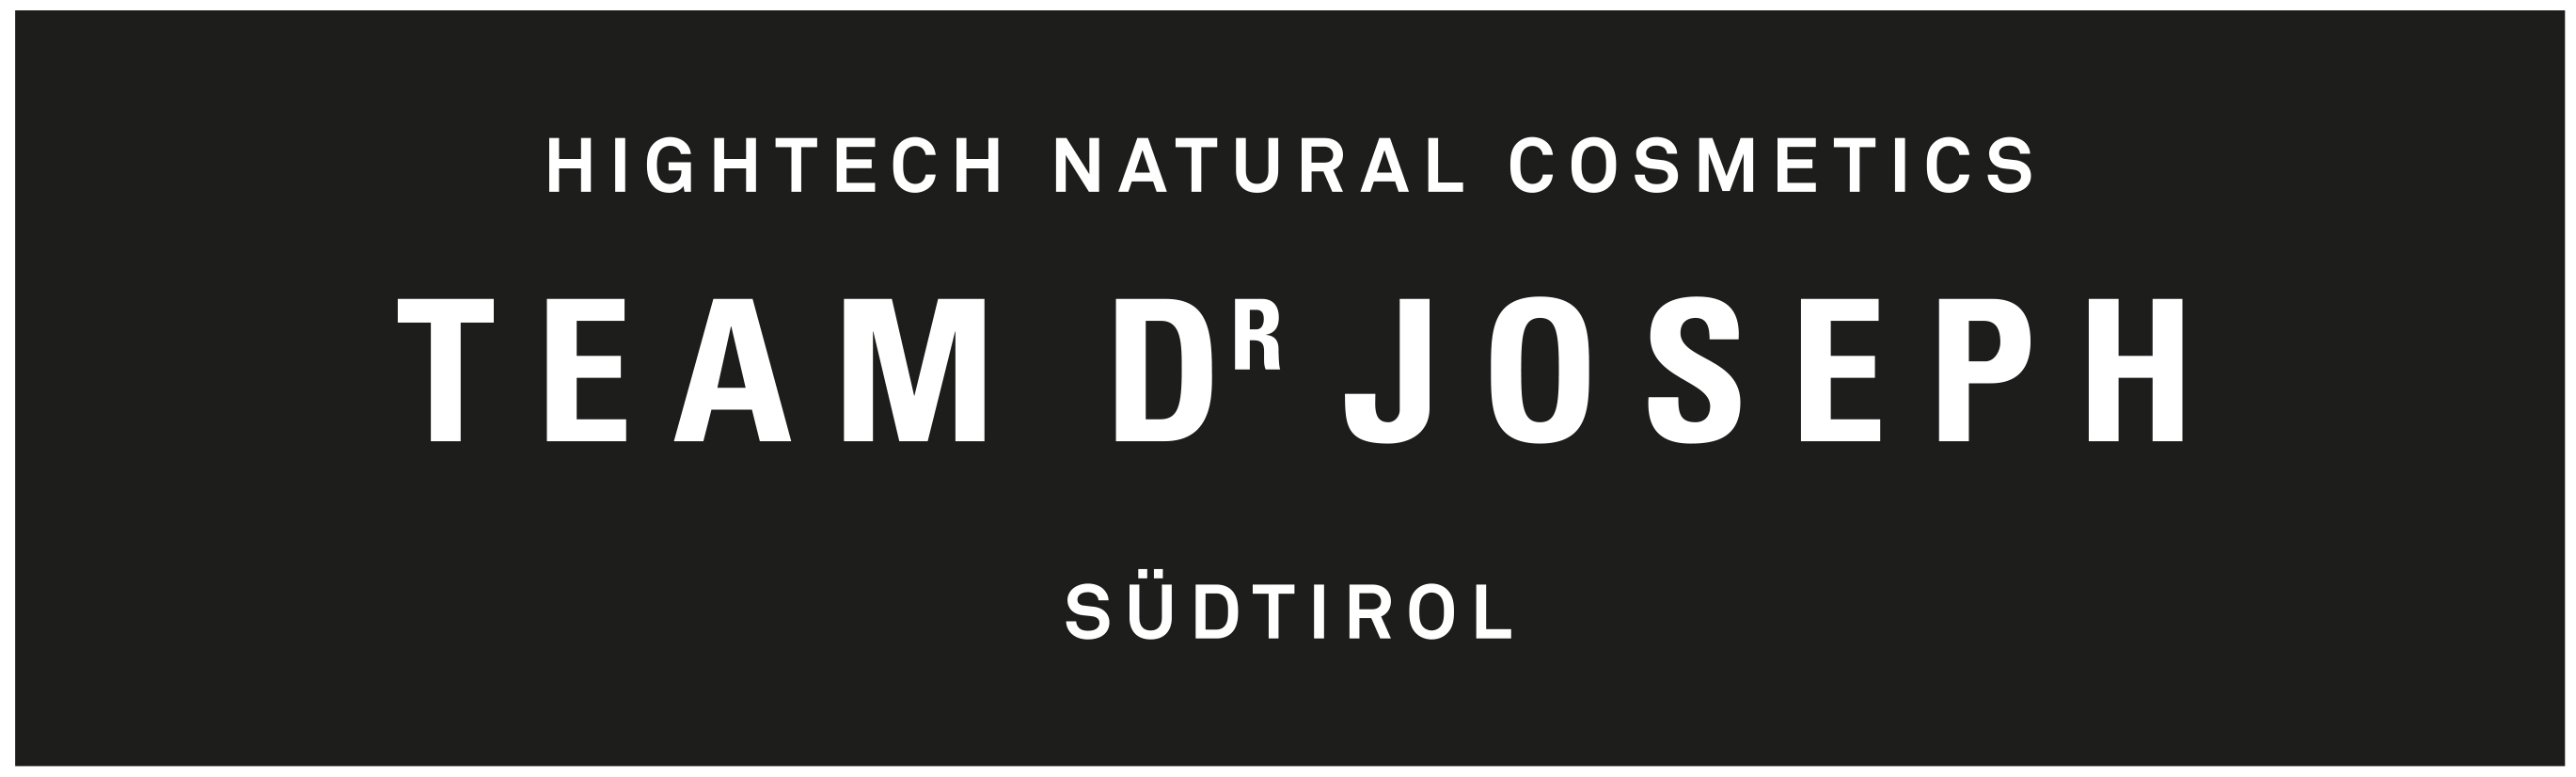 TEAM_DR_JOSEPH_Logo_black.jpg